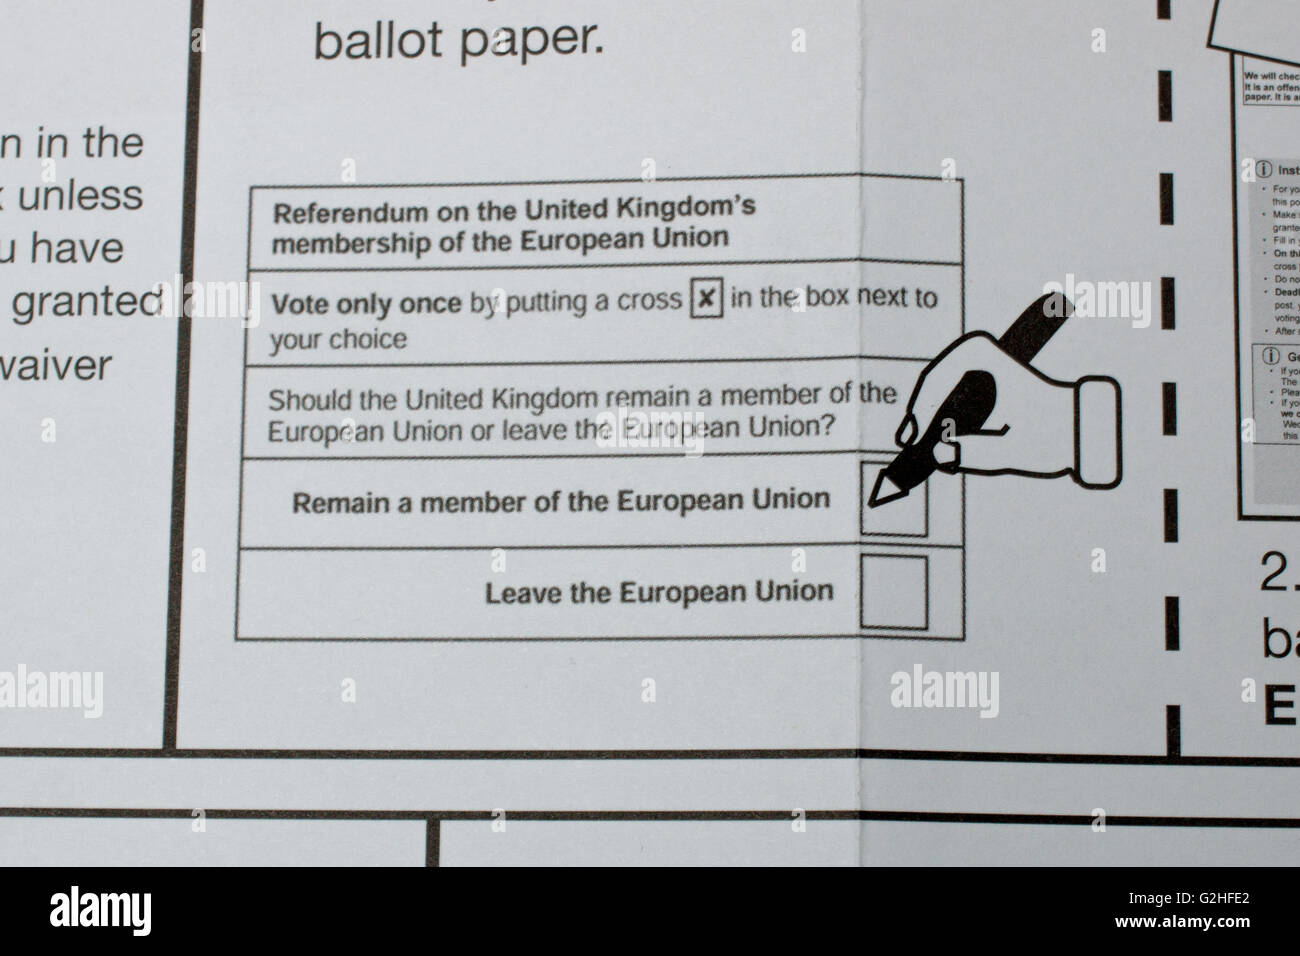 Close up of the postal vote illustration criticized for bias during the 2016 UK EU Referendum. - Stock Image